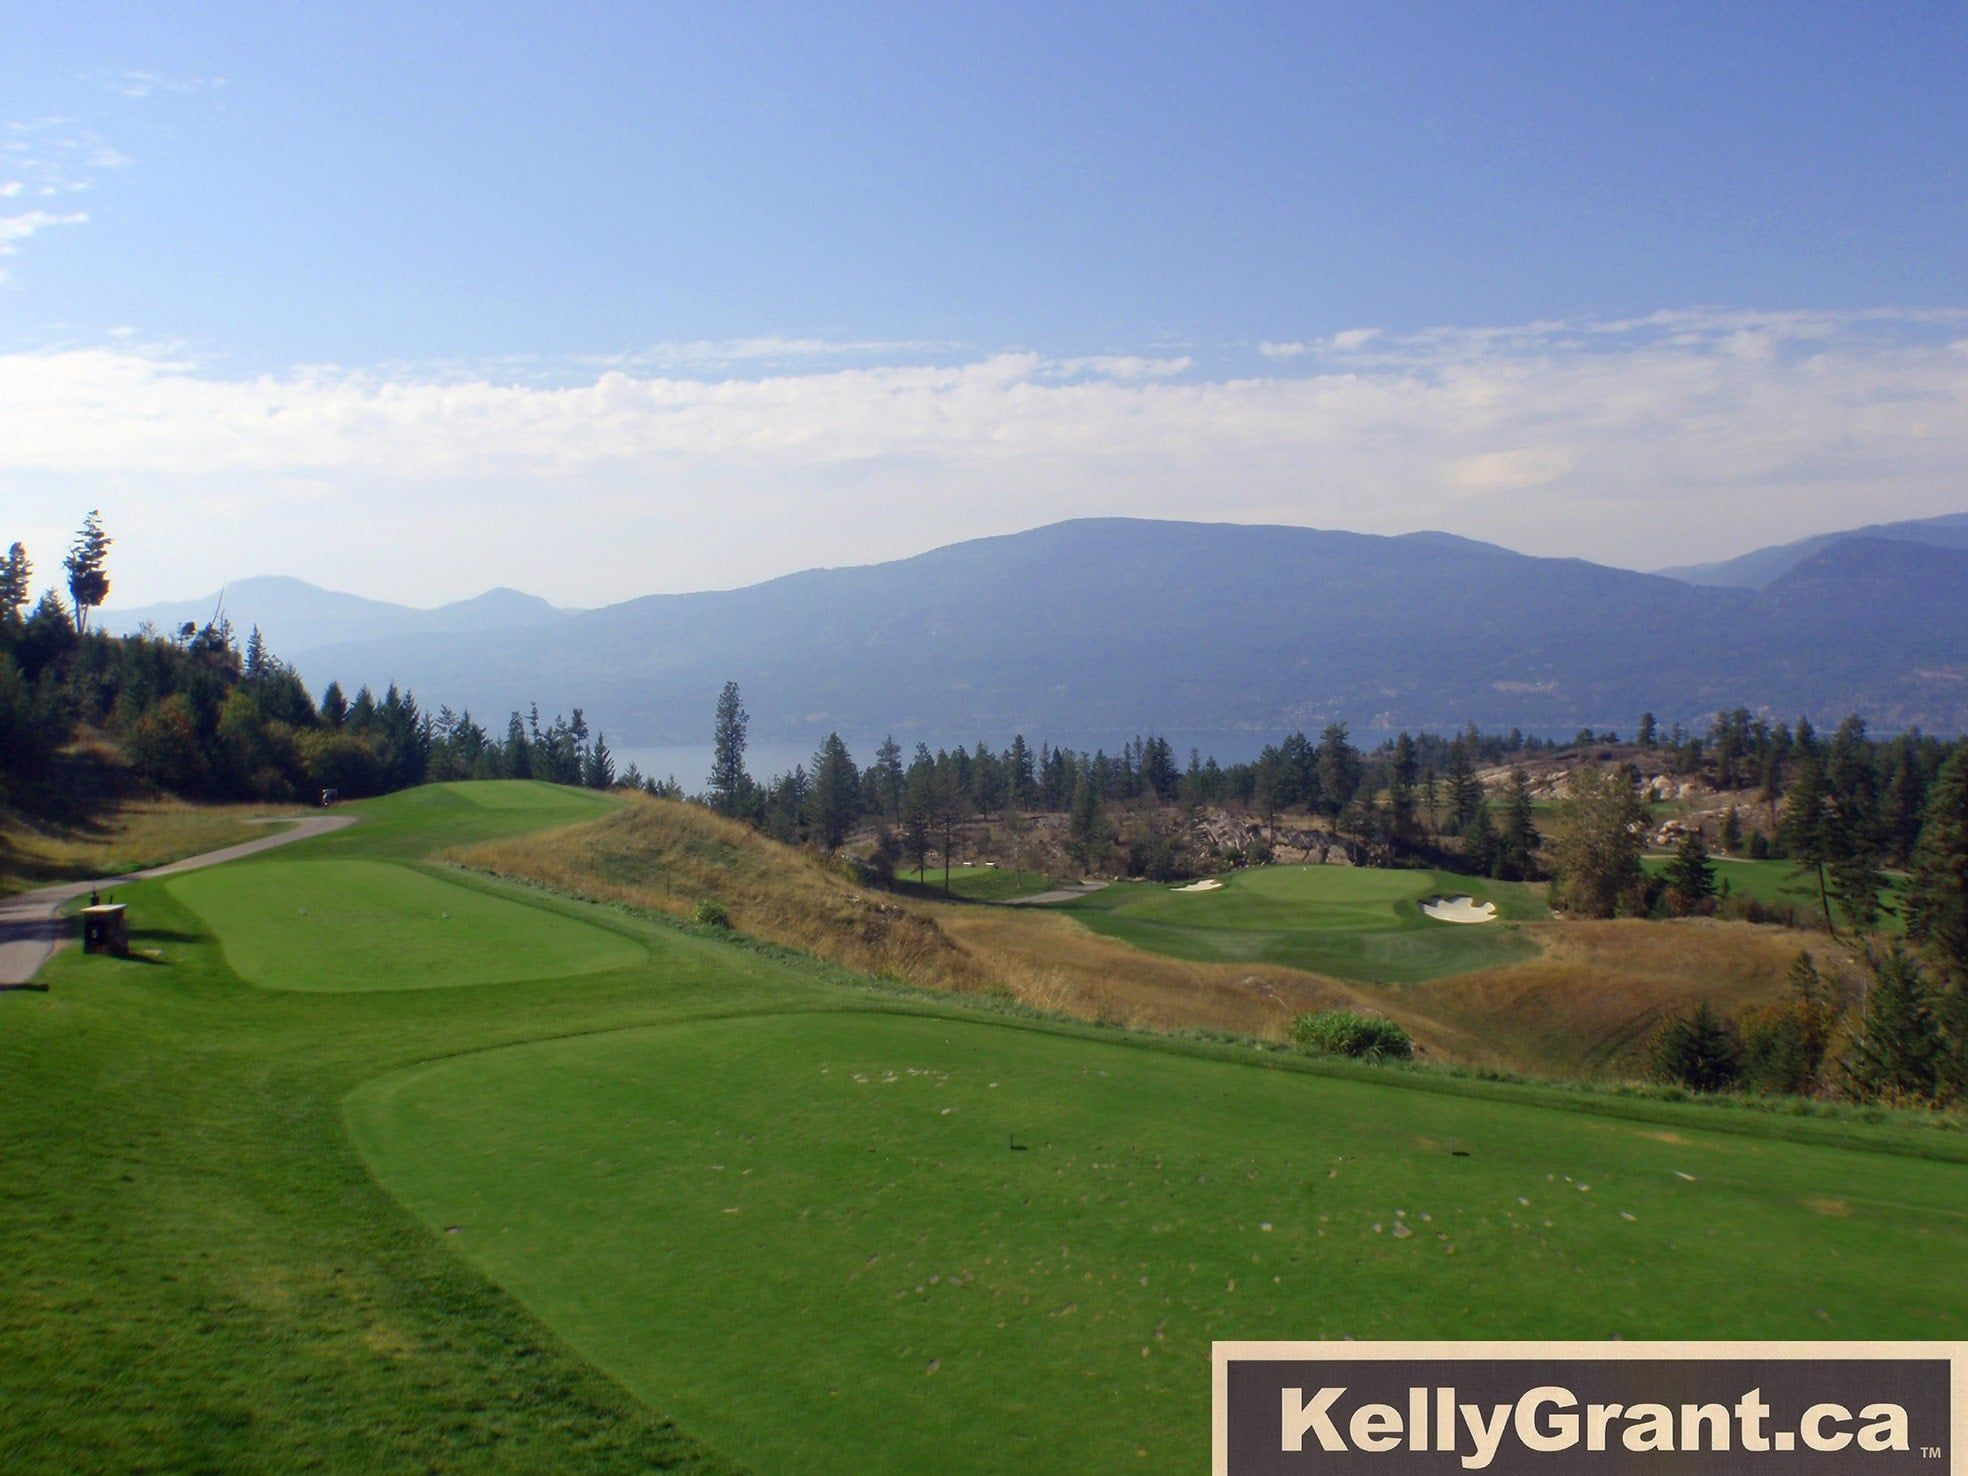 Kelly-Grant-BC golf club image 1